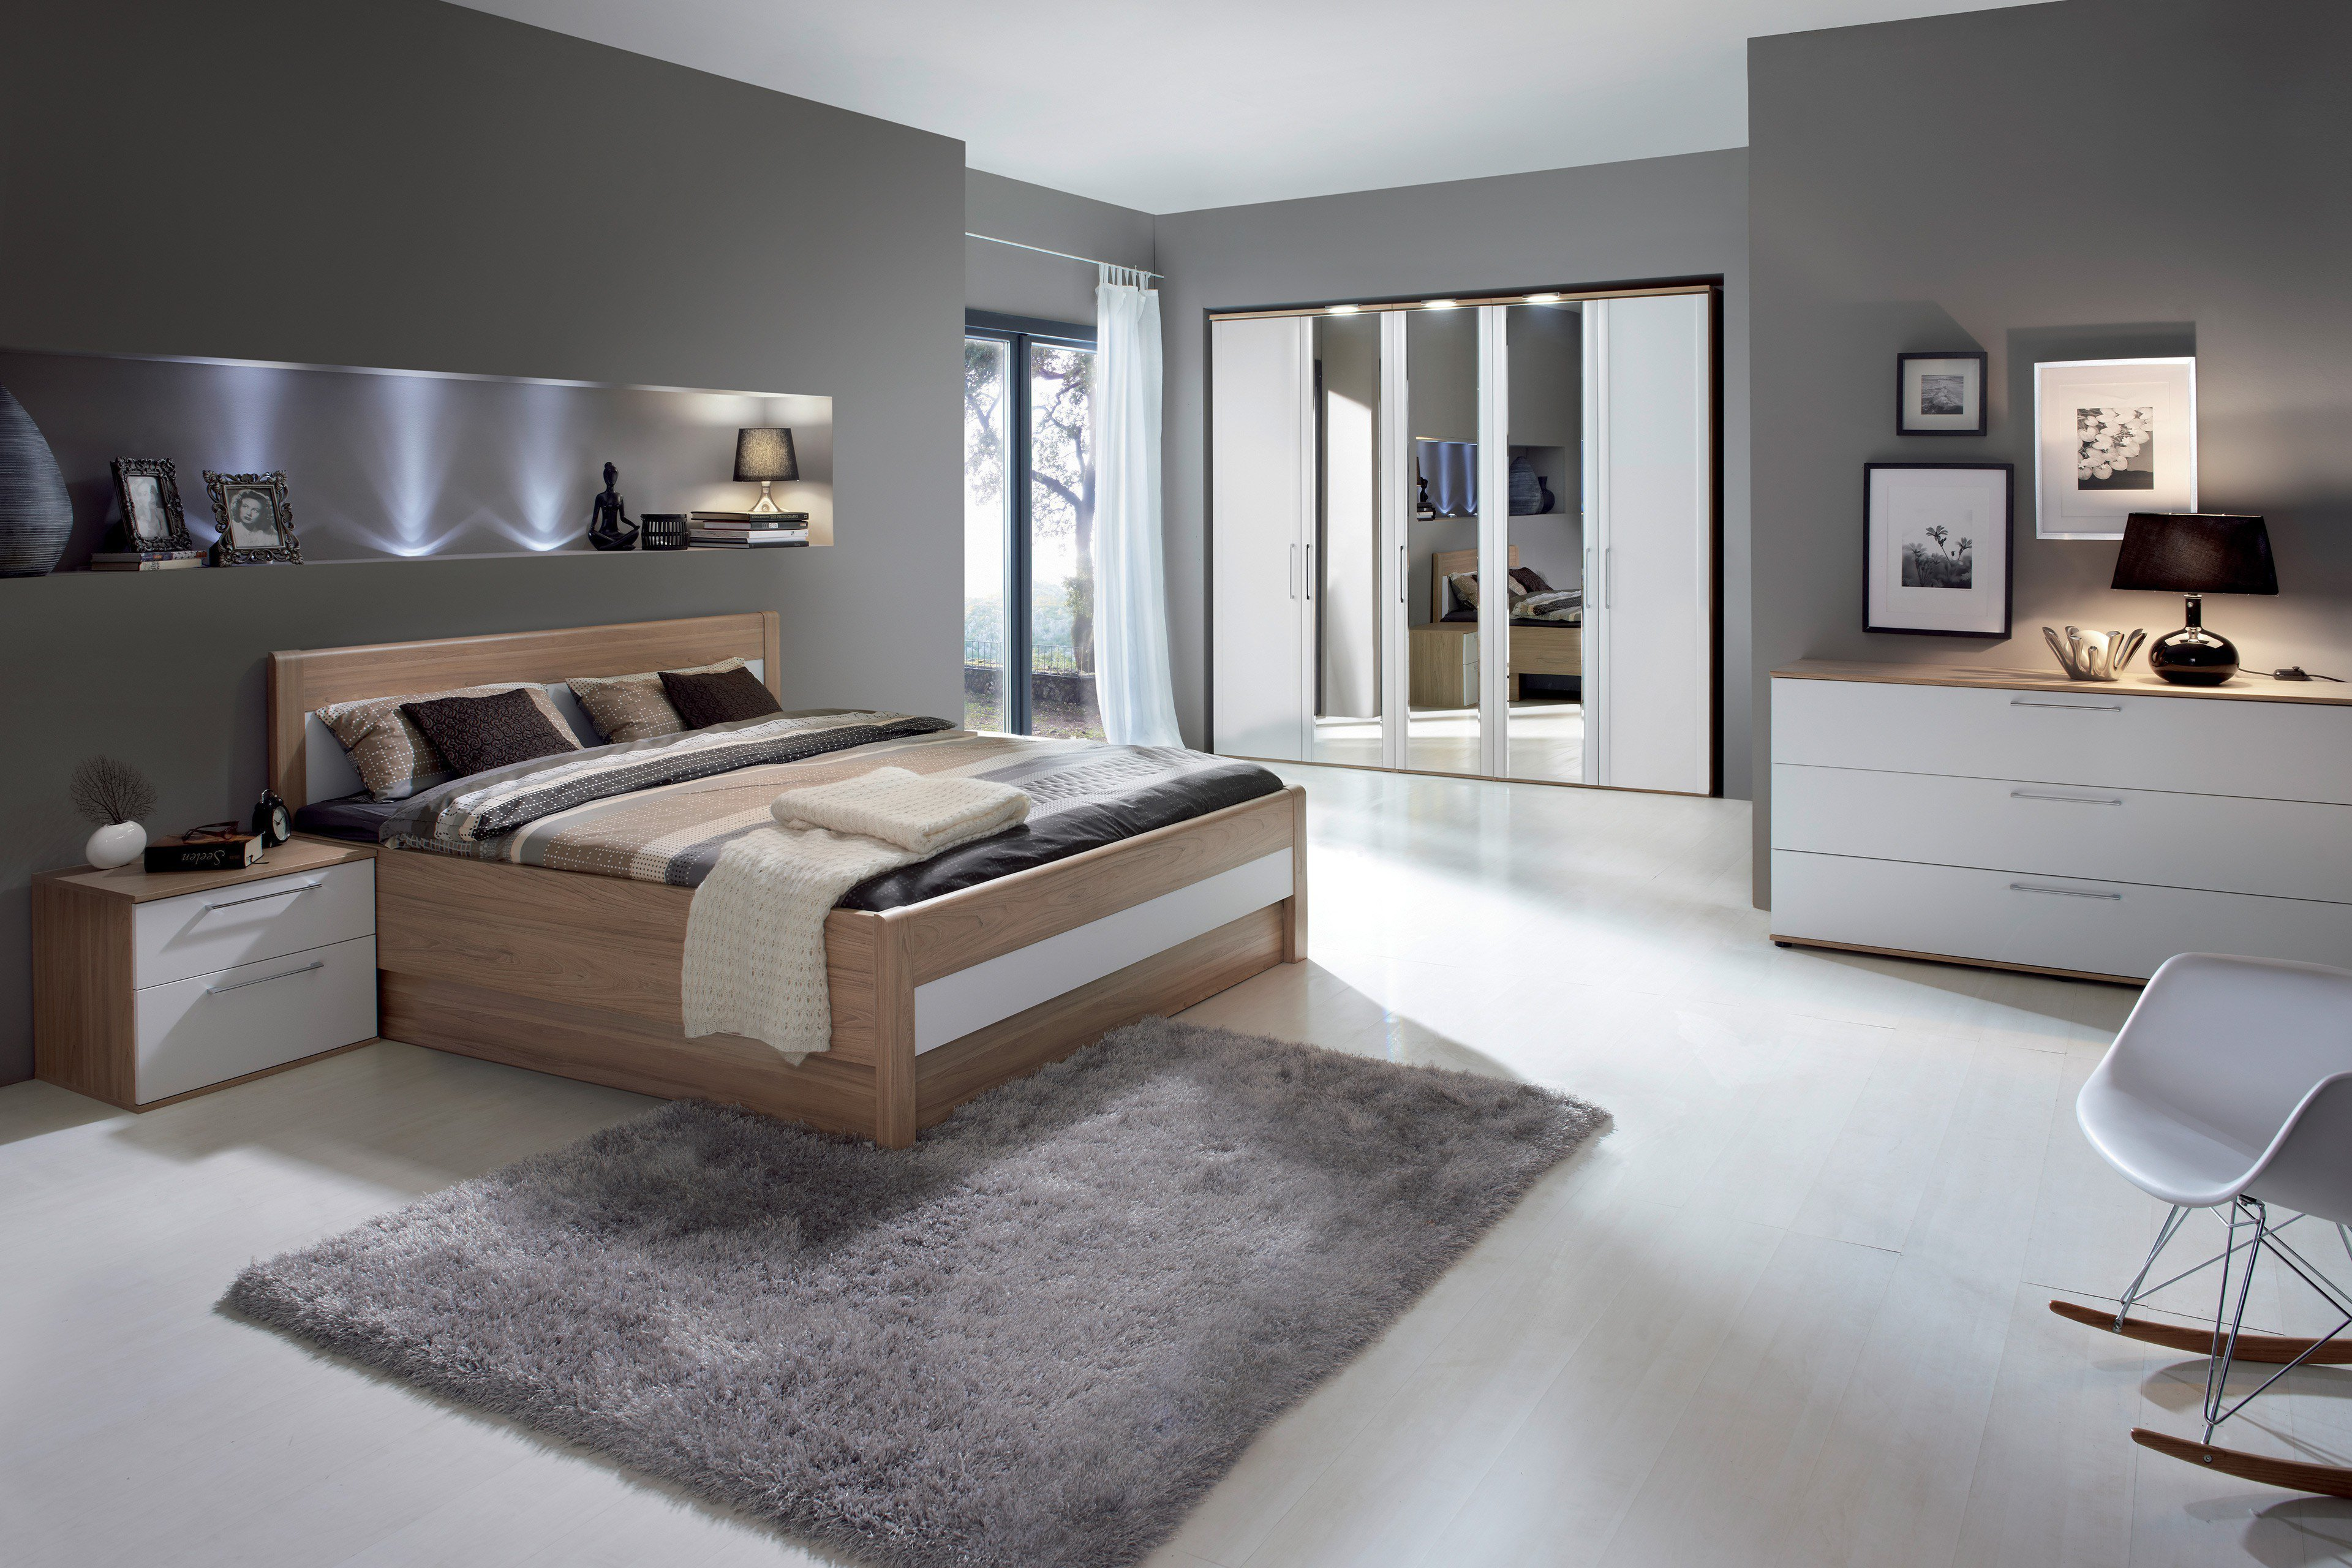 nolte belvento schlafzimmer sonoma eiche m bel letz ihr online shop. Black Bedroom Furniture Sets. Home Design Ideas